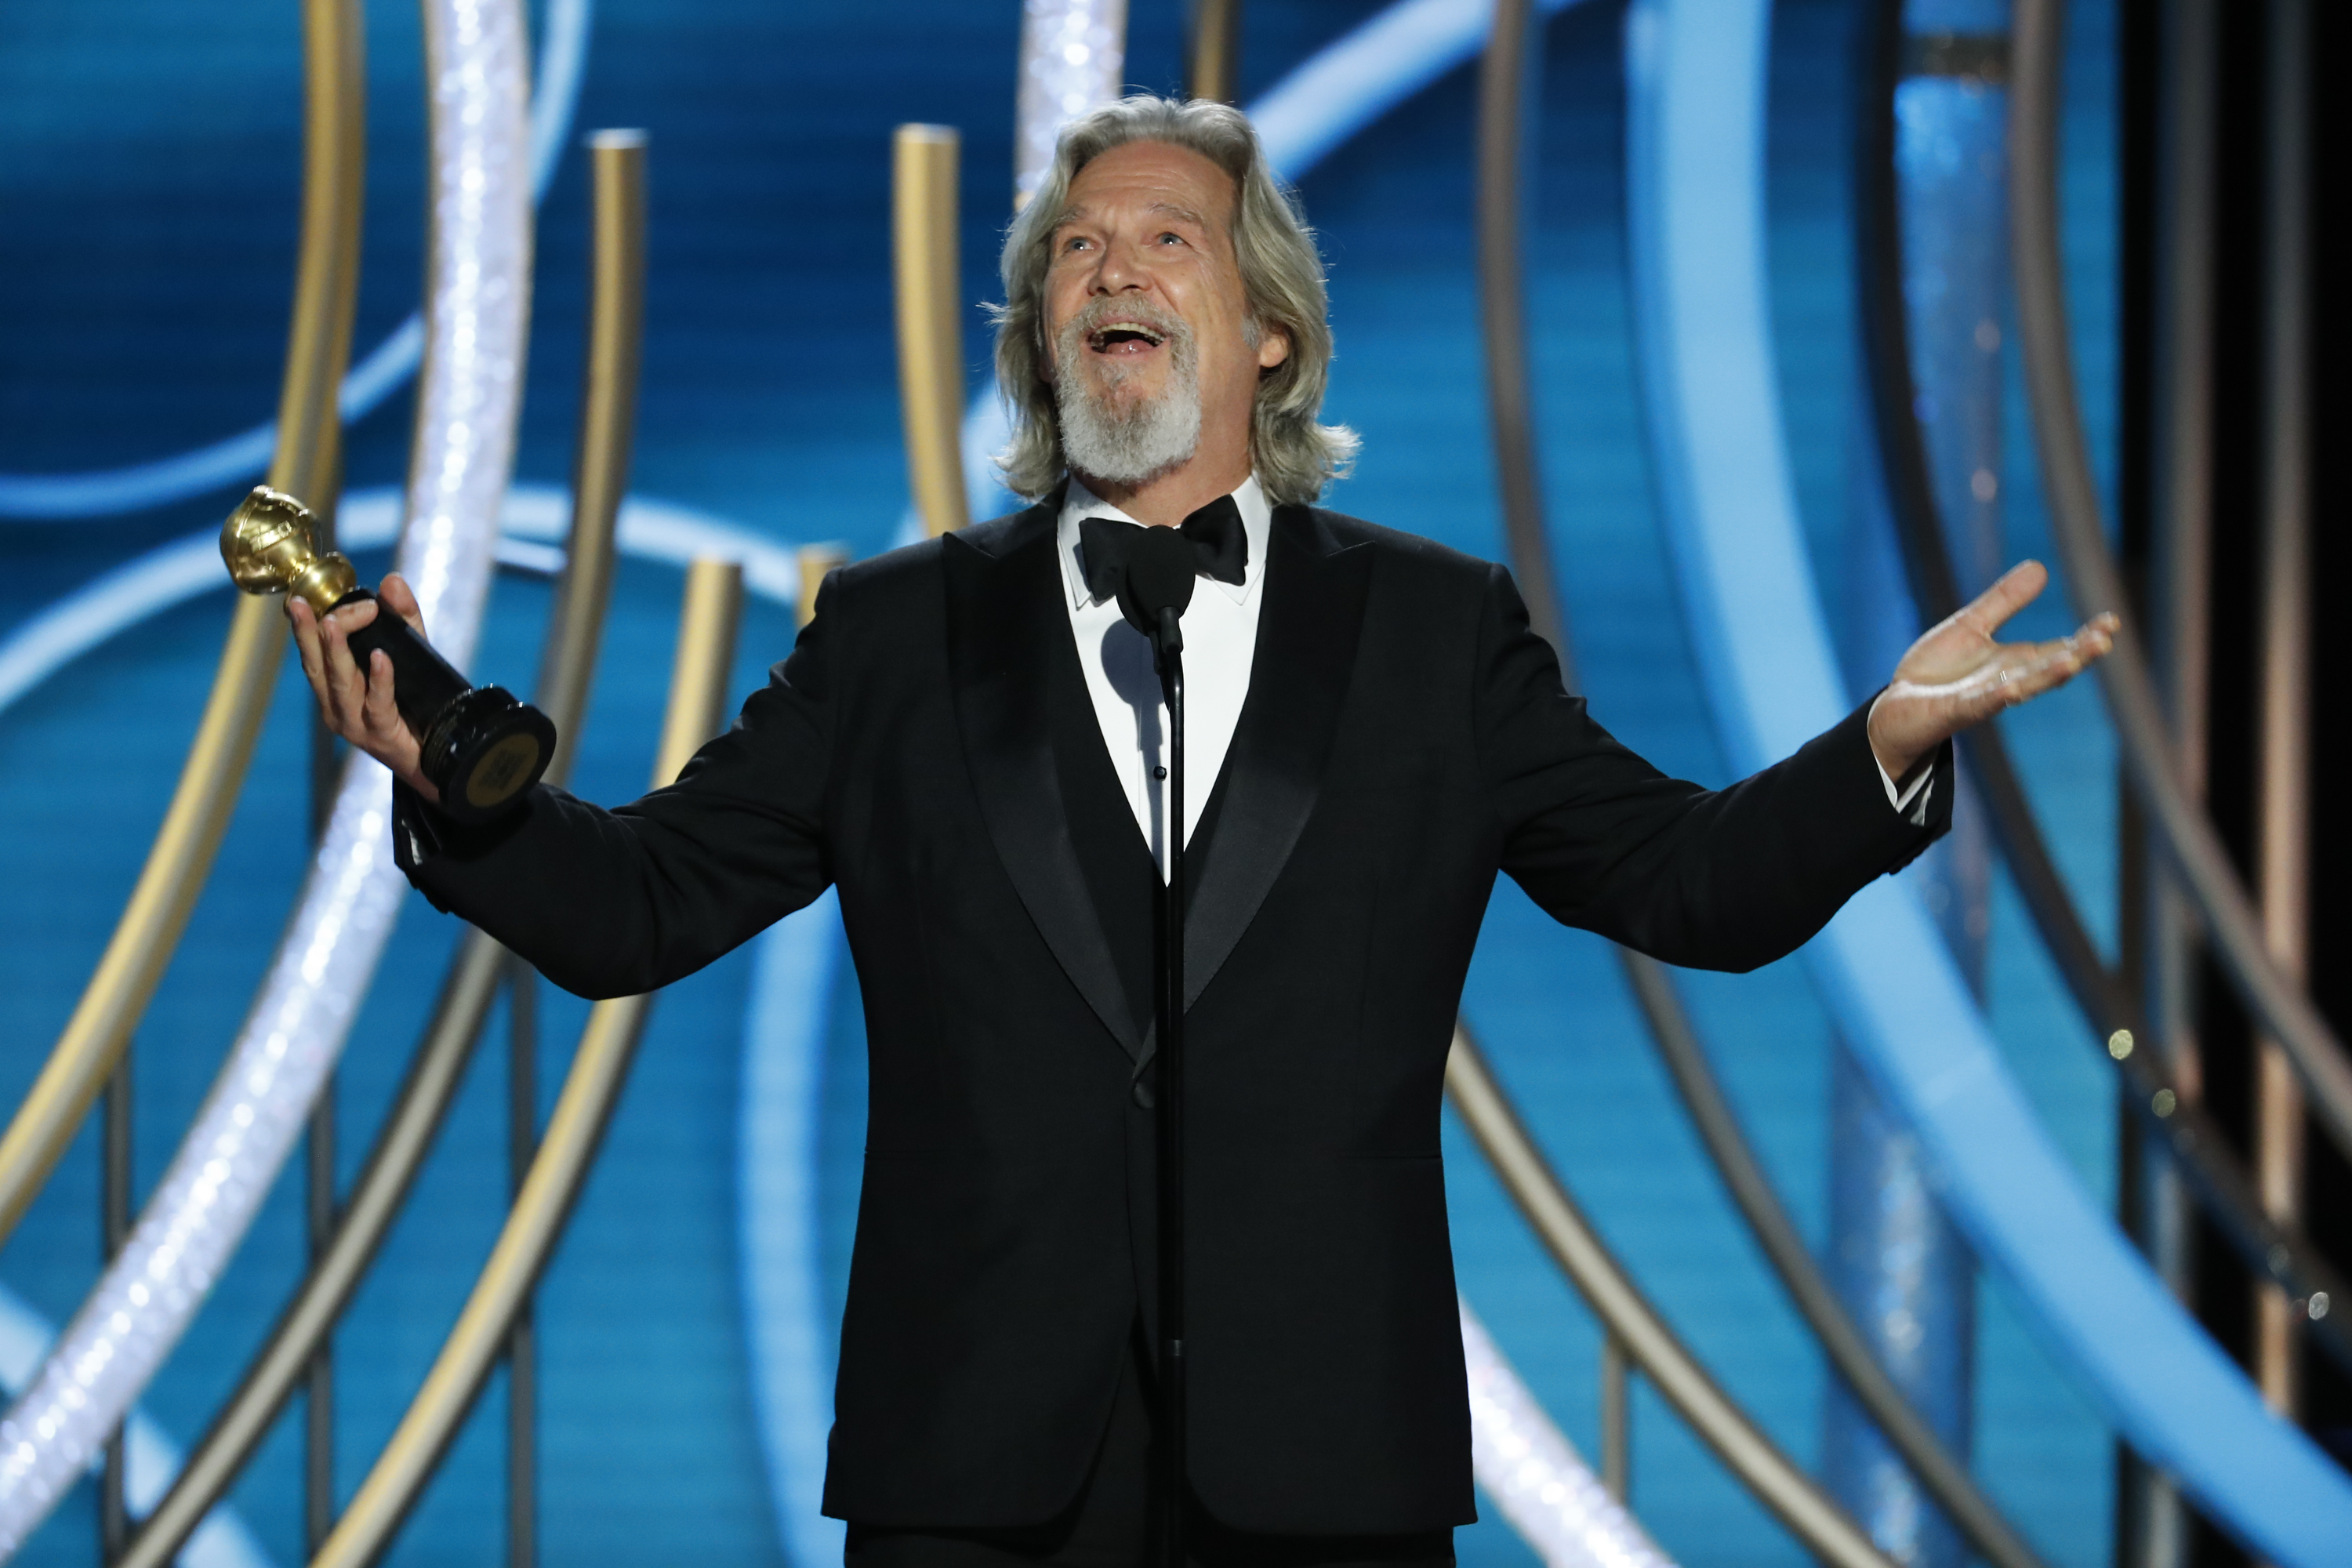 In this handout photo provided by NBCUniversal,  Jeff Bridges accepts the Cecil B. Demille Award  onstage during the 76th Annual Golden Globe Awards at The Beverly Hilton Hotel on January 06, 2019 in Beverly Hills, California.  (Photo by Paul Drinkwater/NBCUniversal via Getty Images)